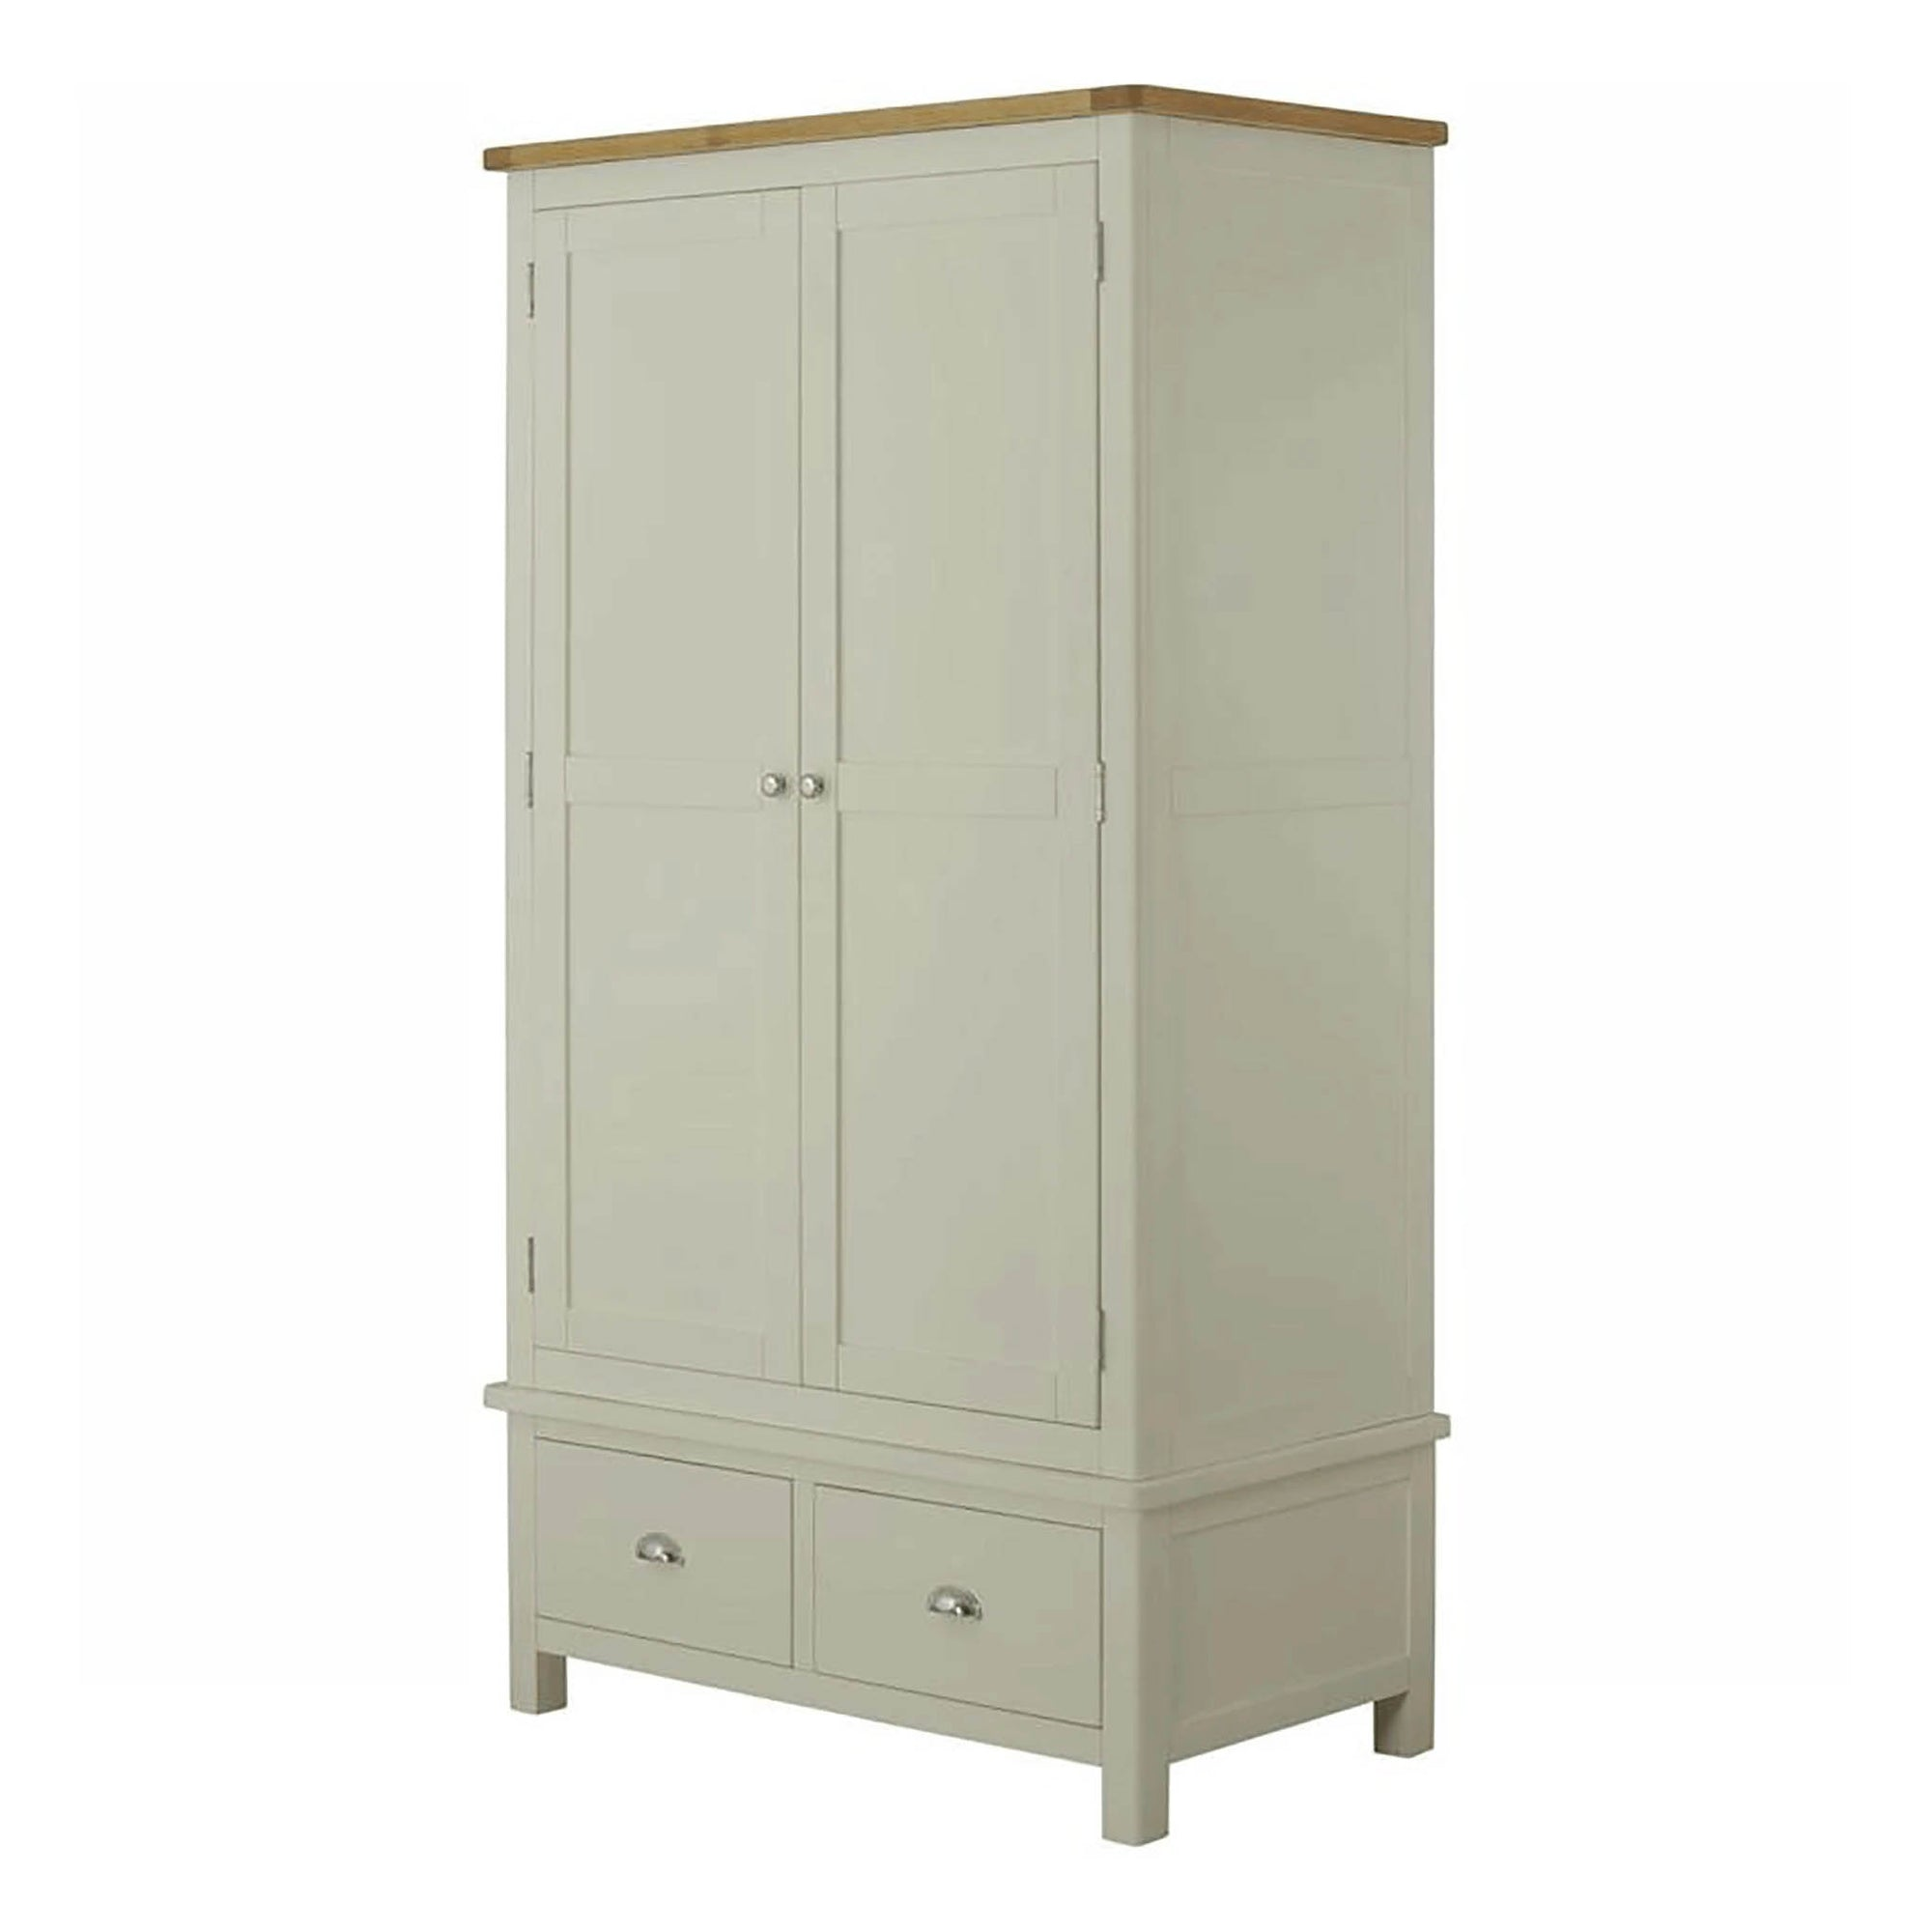 The Padstow Grey Wooden 2 Door Wardrobe with 2 Drawers from Roseland Furniture